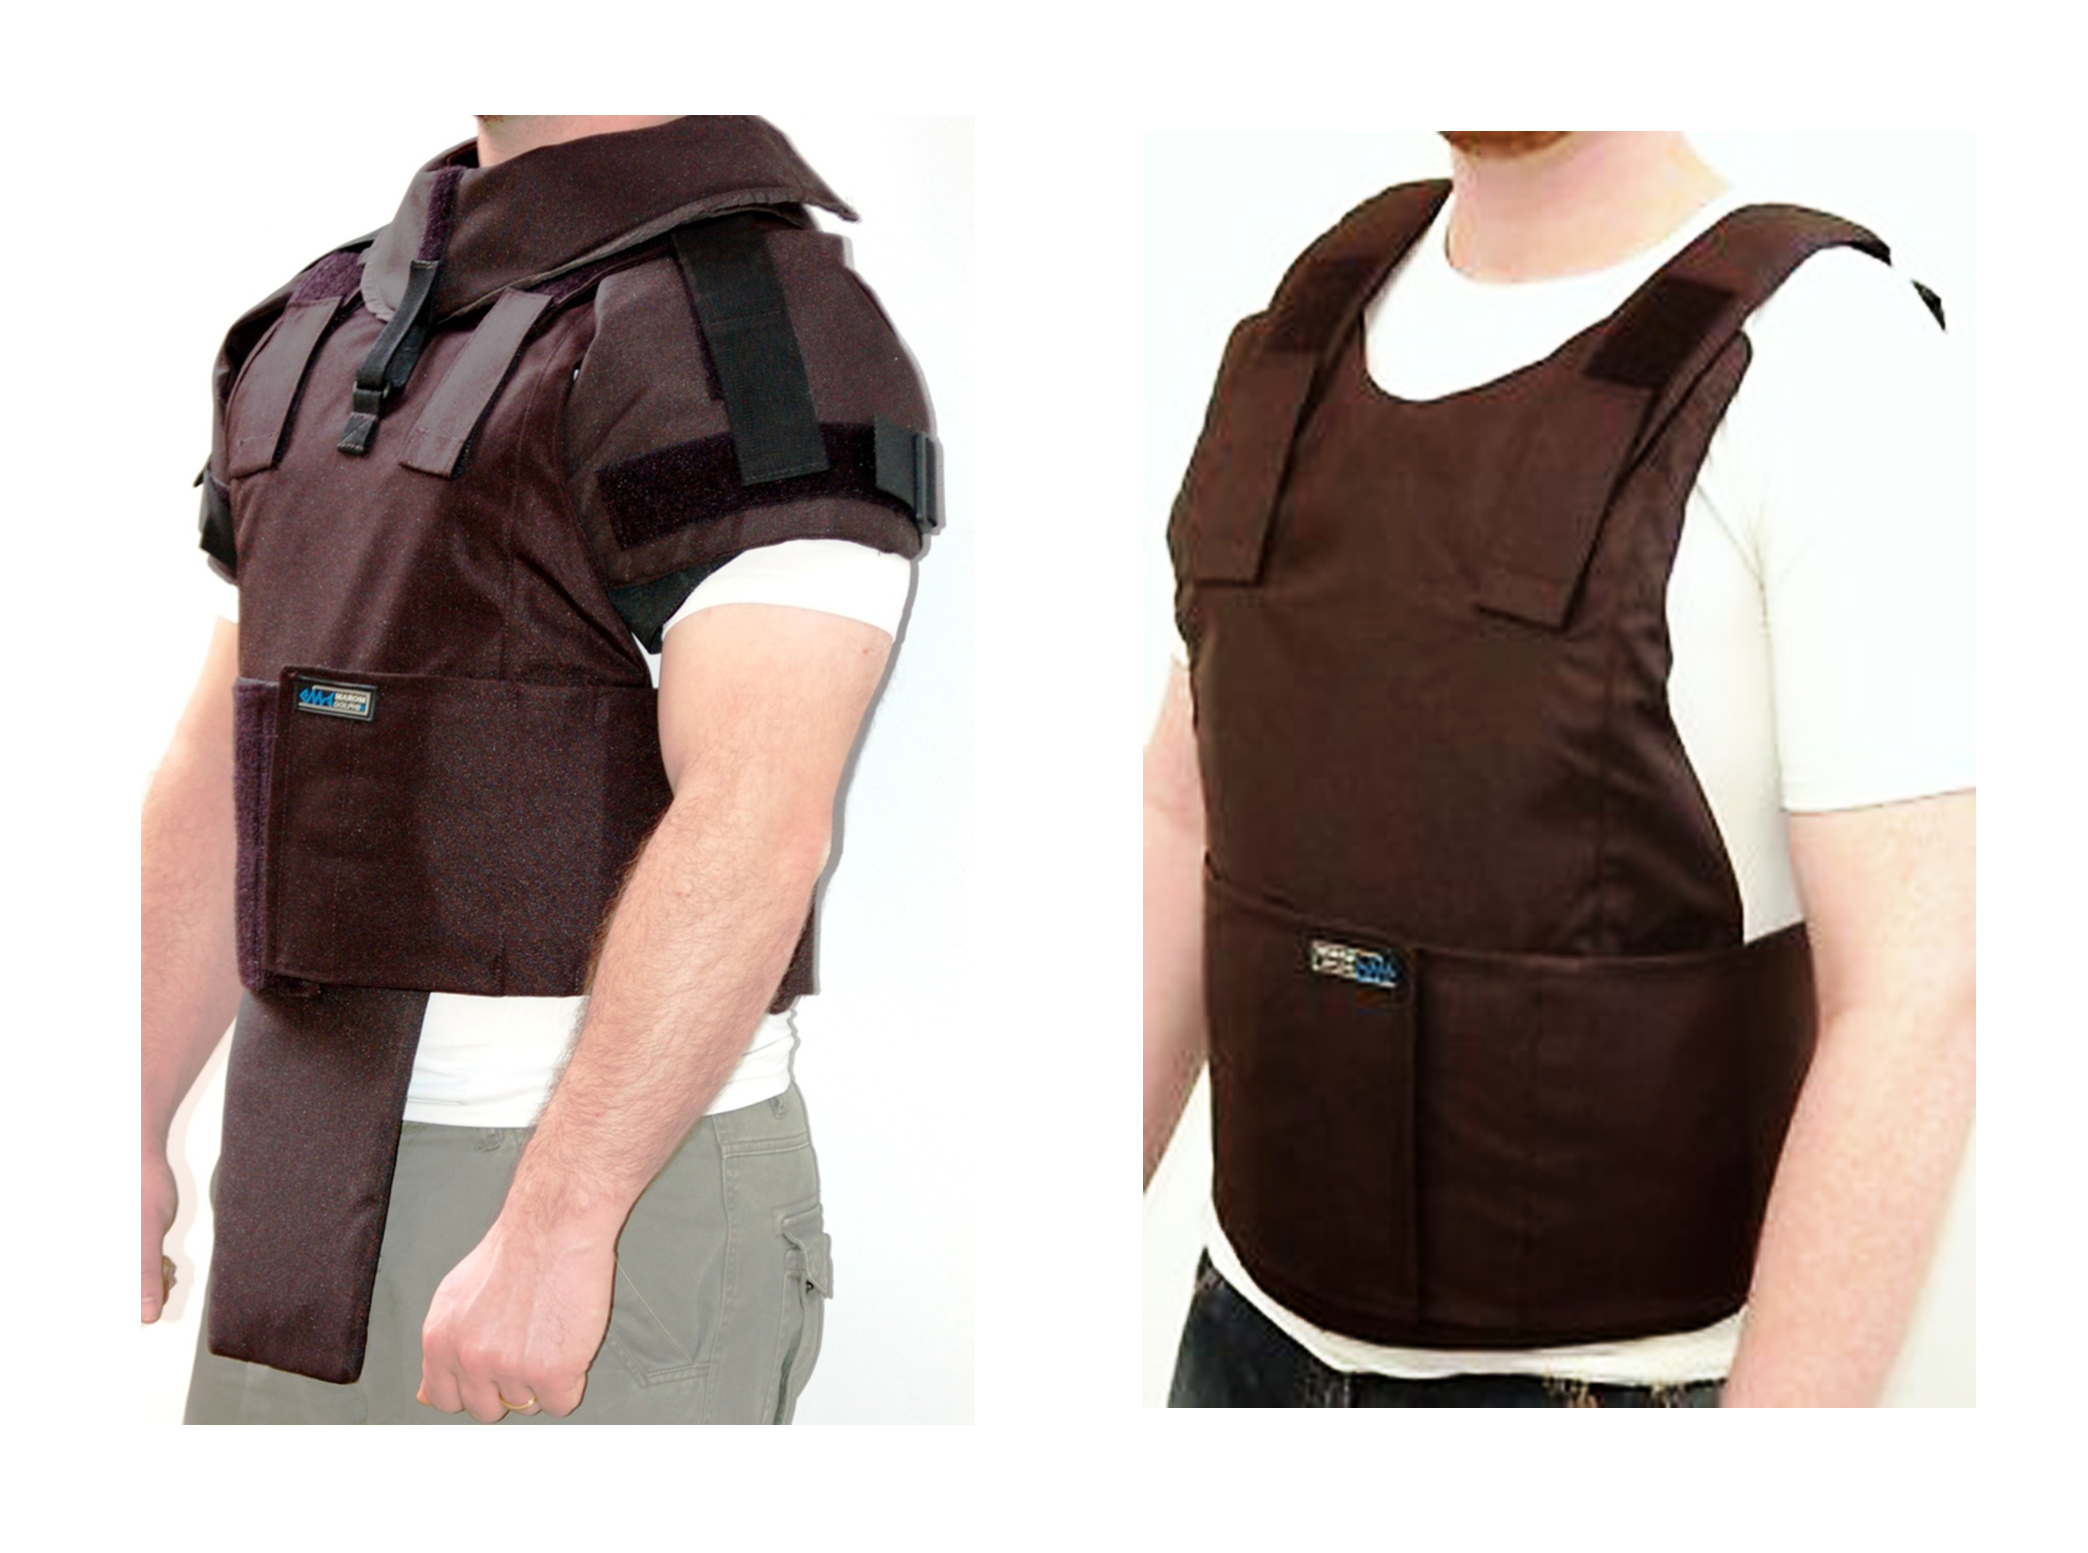 External Body armor protection level III-A_Detachable